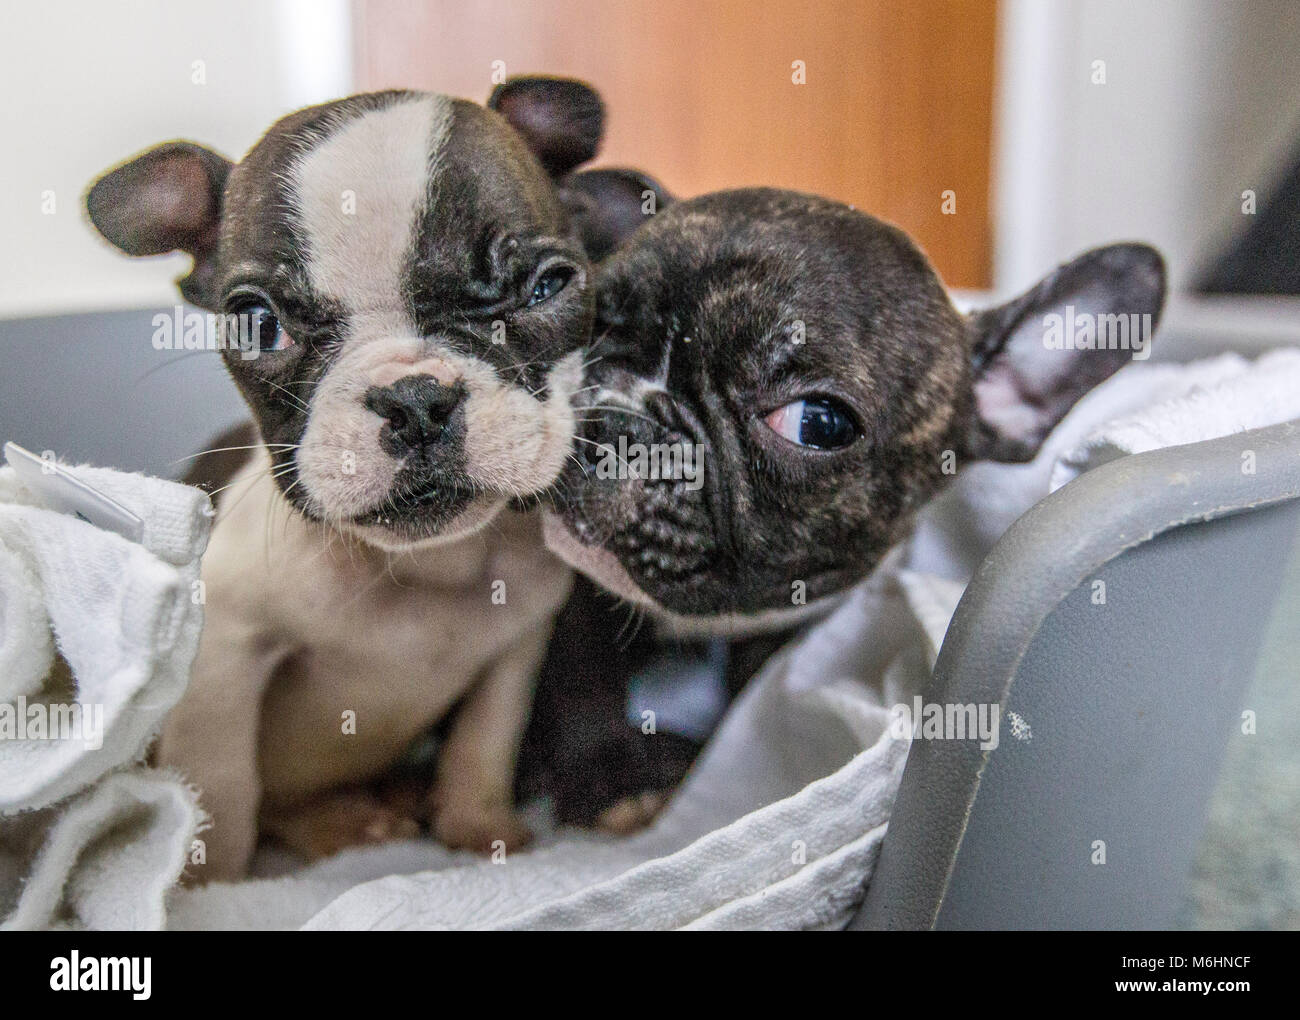 Rescued French Bulldog Puppies Stock Photo 176181615 Alamy